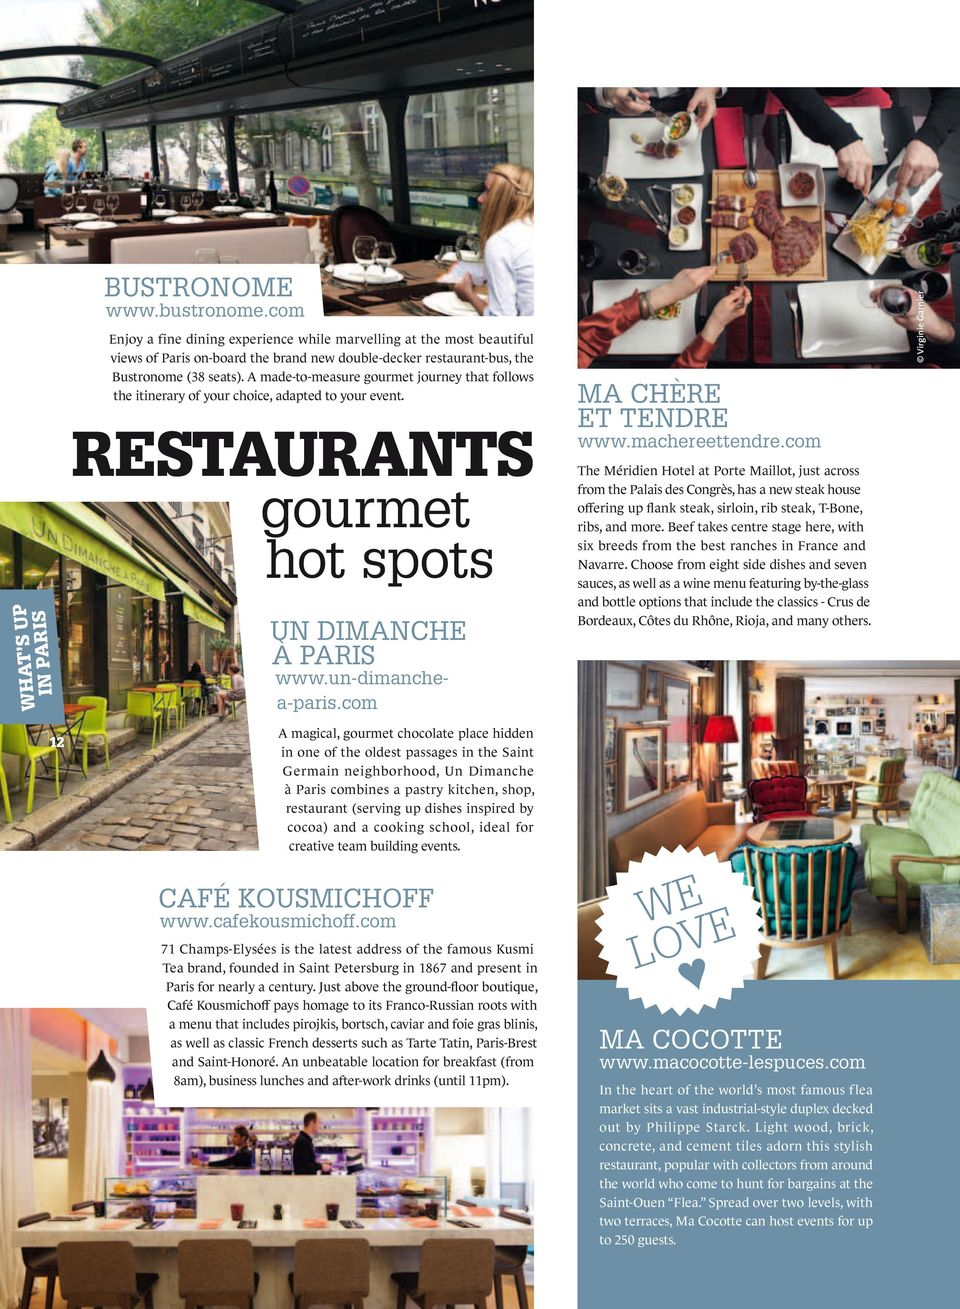 A made-to-measure gourmet journey that follows the itinerary of your choice, adapted to your event. ReSTauRaNTS WHaT S up in PaRiS gourmet hot spots 12 Un Dimanche à Paris Ma Chère et Tendre www.